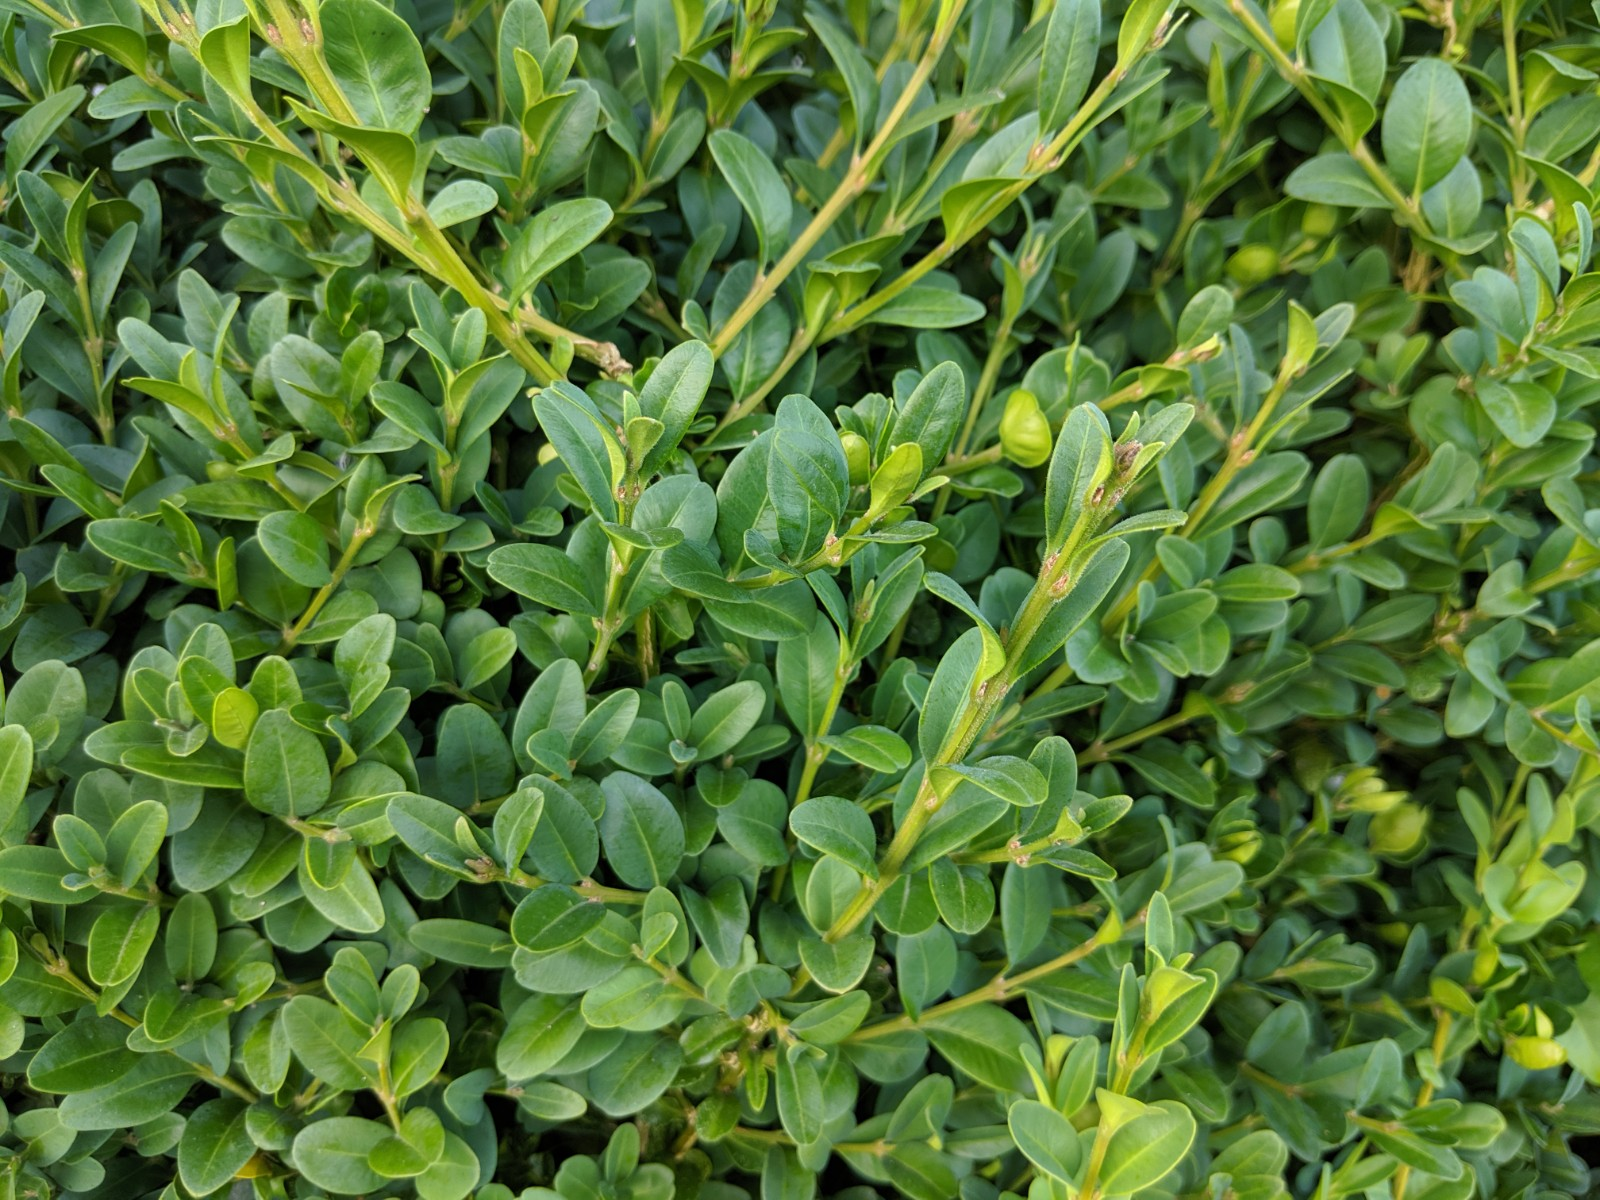 Common Boxwood Foliage